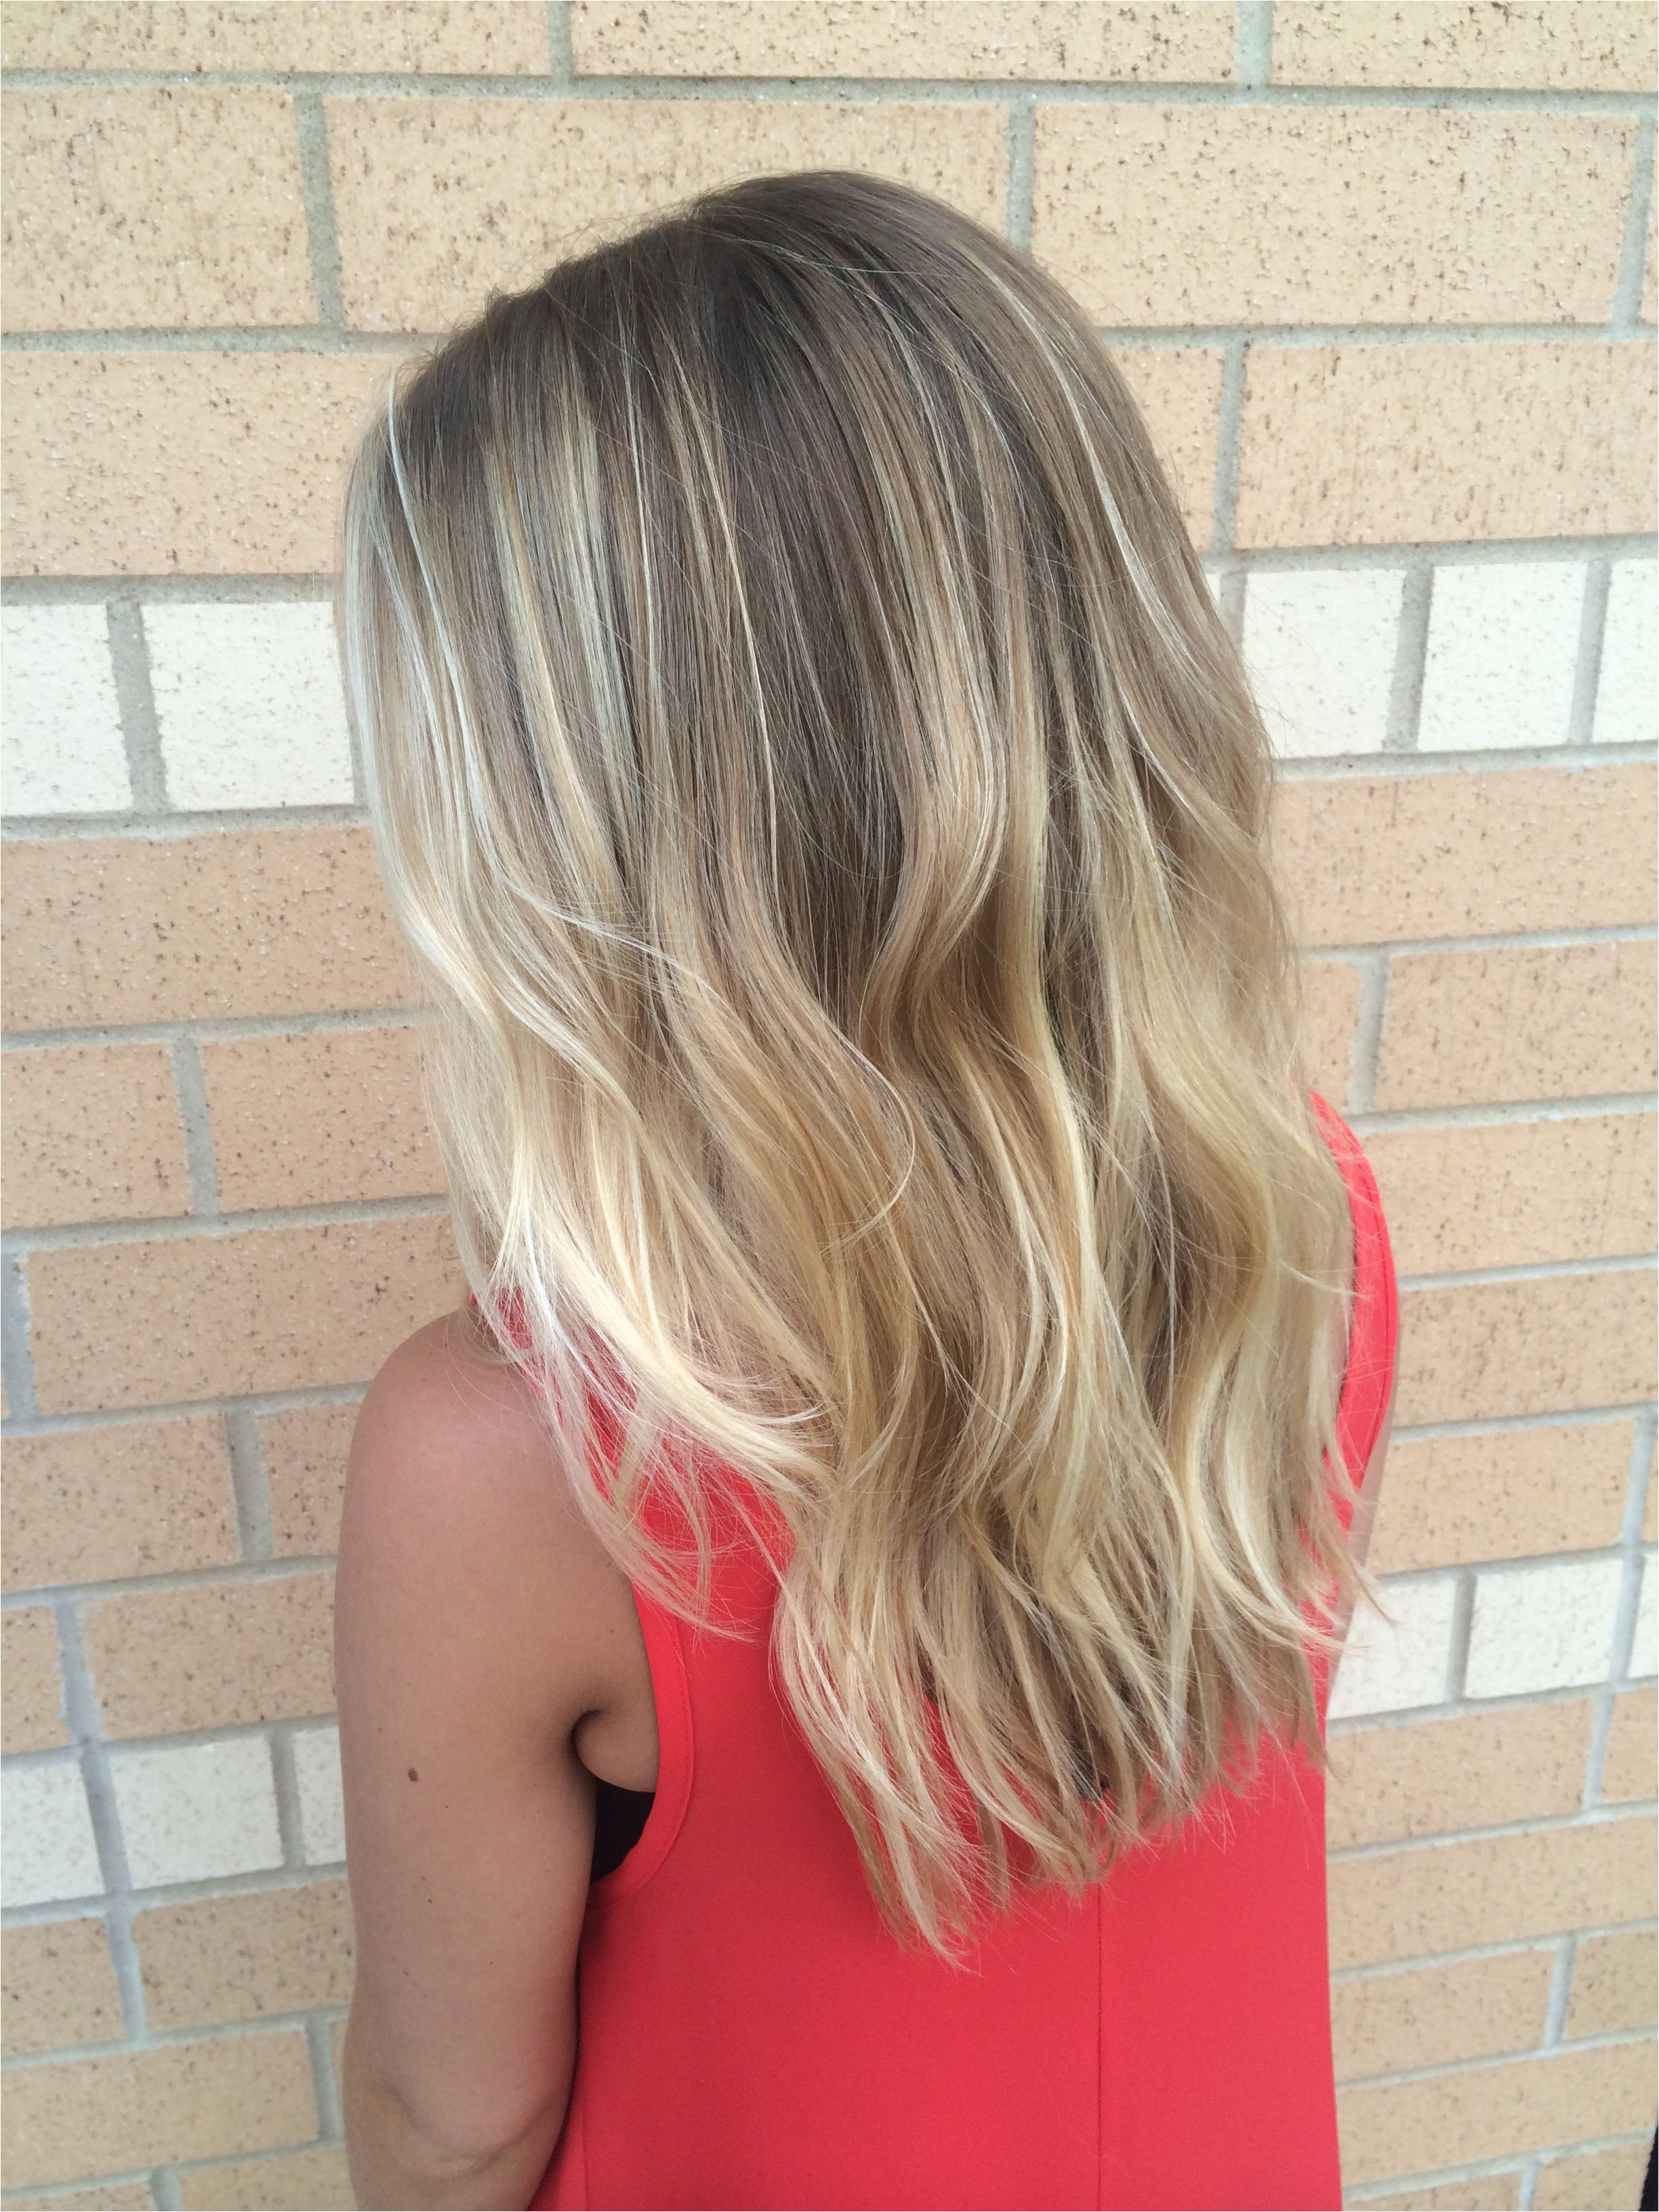 virgin hair for sale Bobs Blondes Ombre With Highlights Blonde Balayage Highlights Blonde